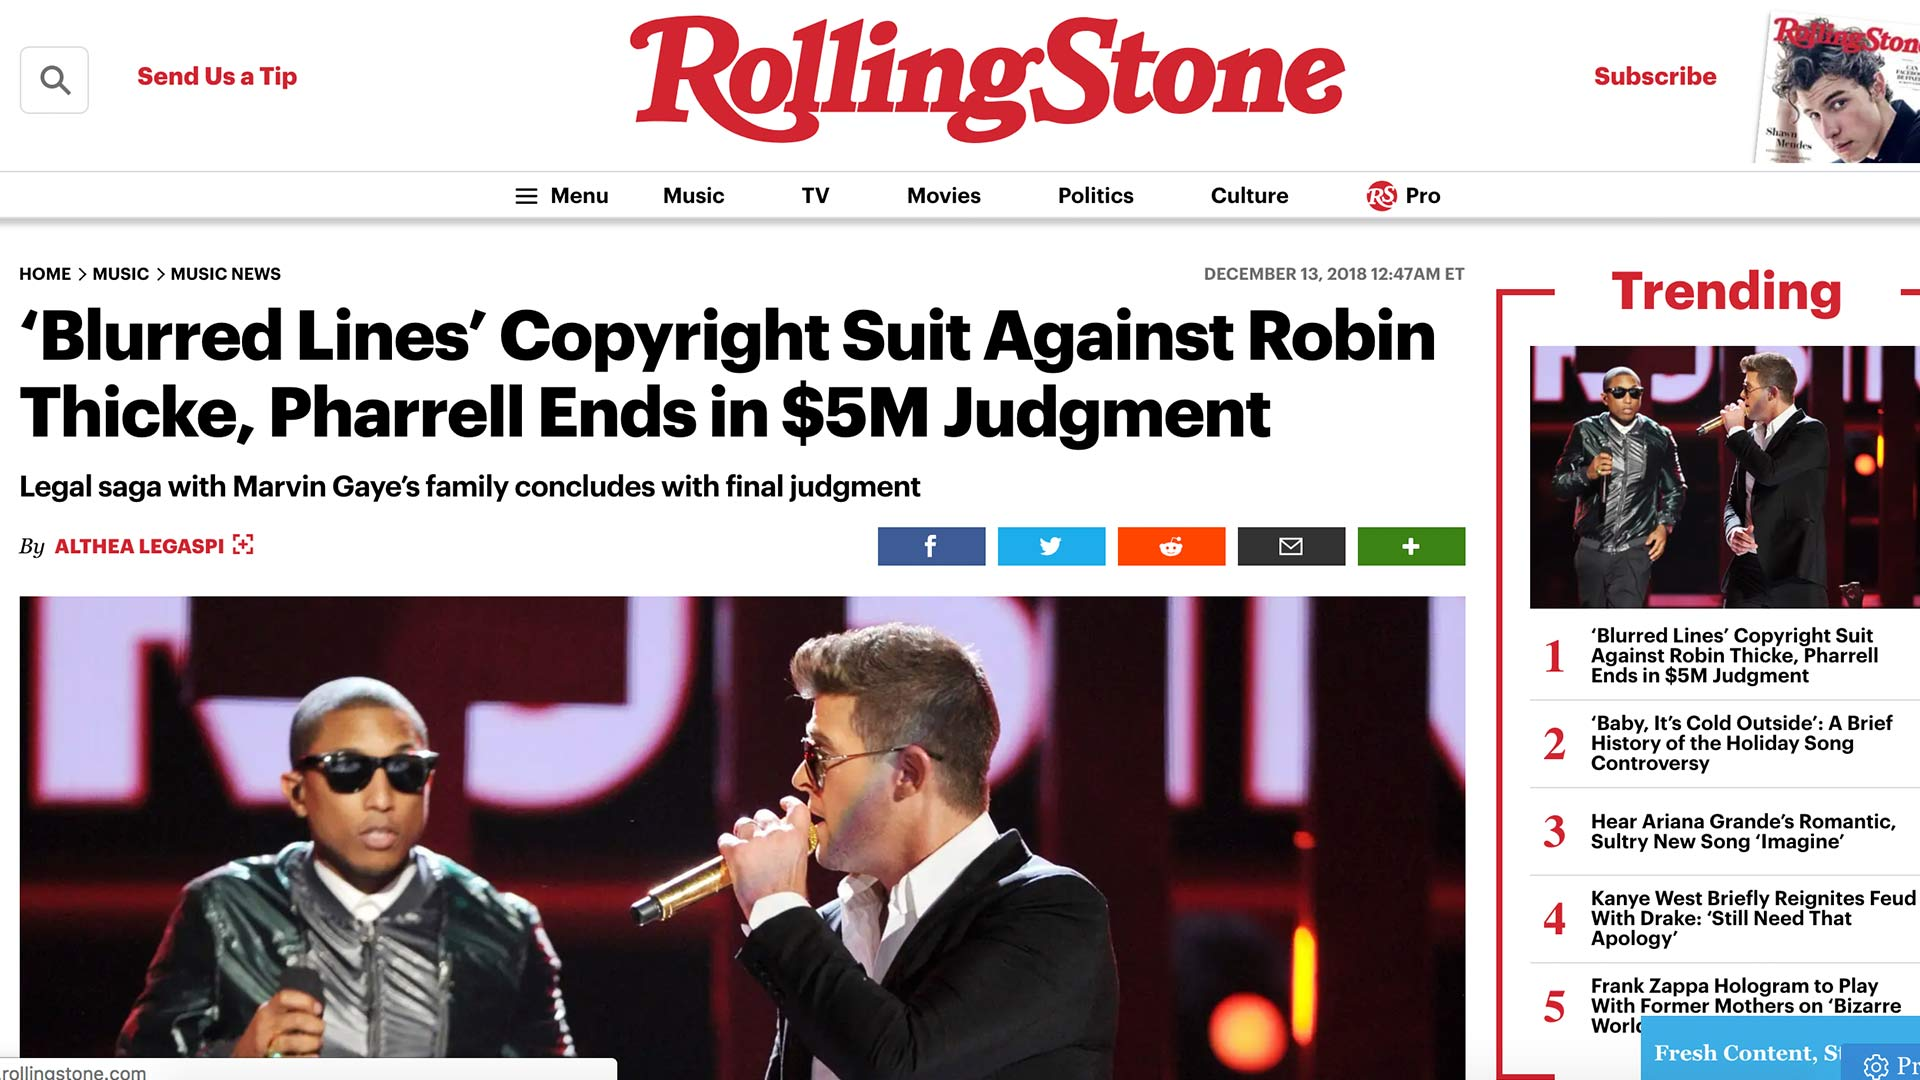 Fairness Rocks News 'Blurred Lines' Copyright Suit Against Robin Thicke, Pharrell Ends in $5M Judgment